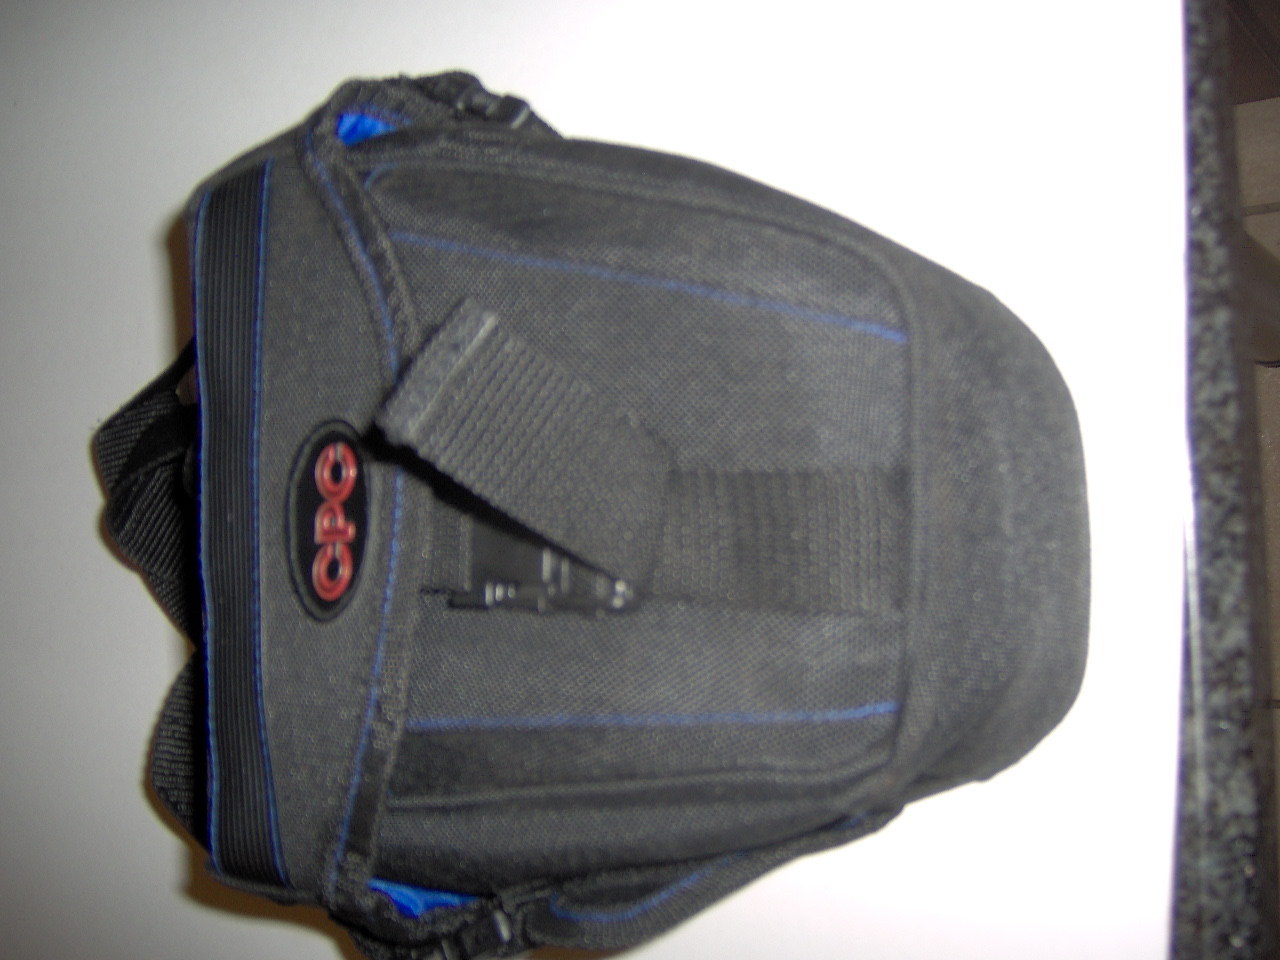 Camera carry bag